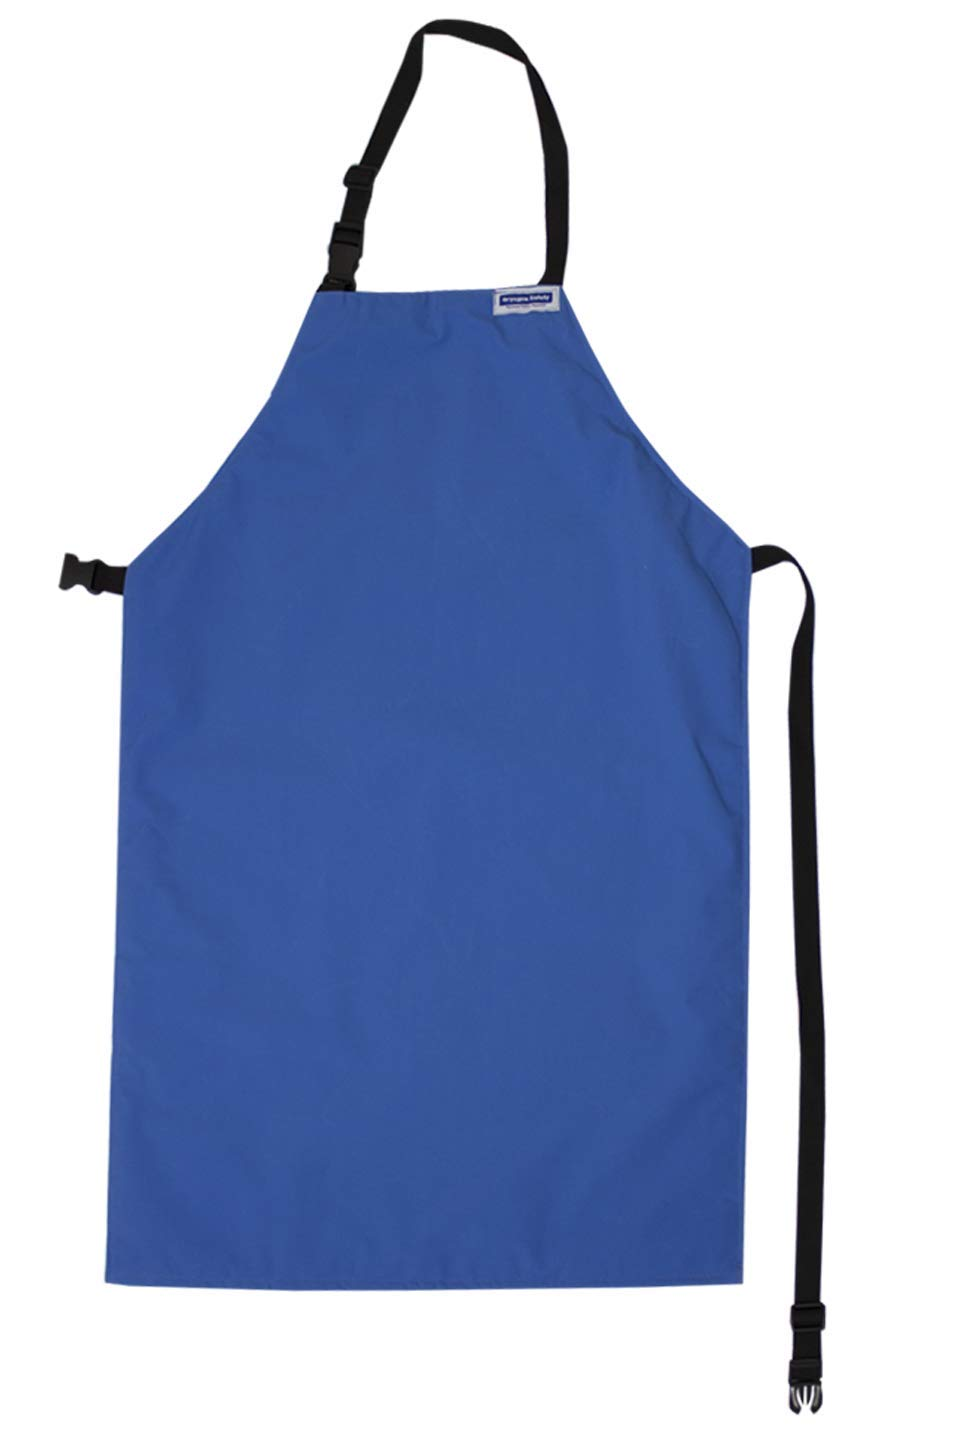 Cryogenic Apron, Blue, 36 in. L, 24 in. W by National Safety Apparel Inc (Image #1)